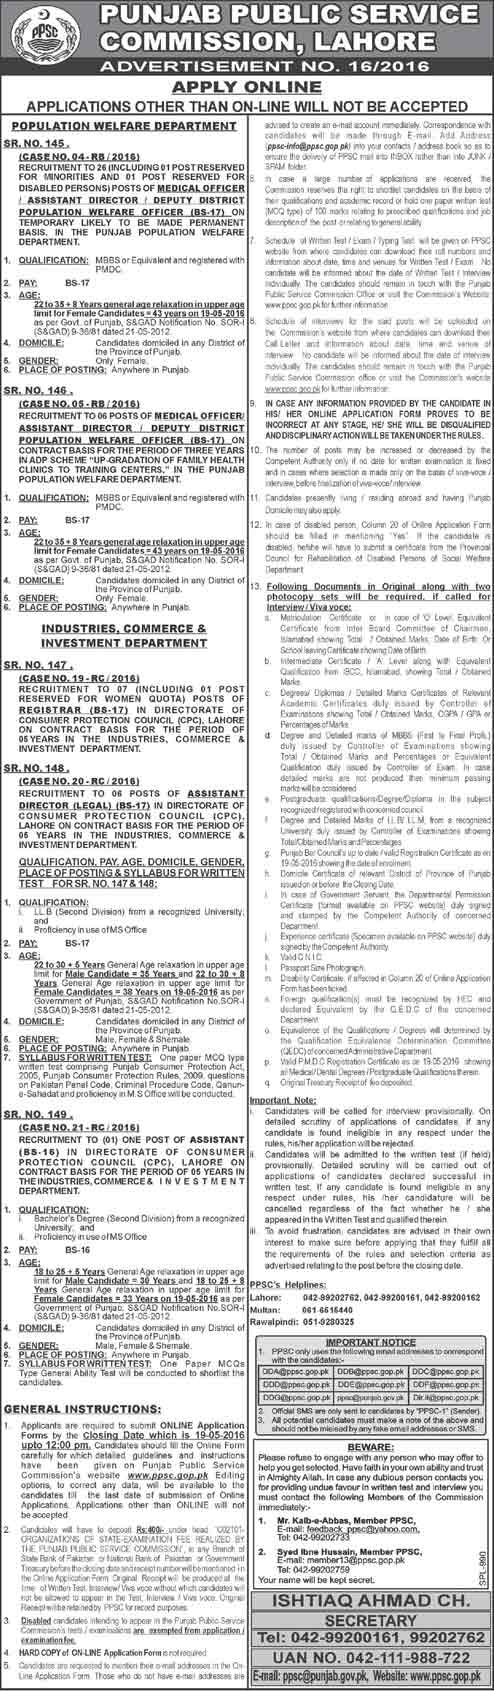 PPSC Population Welfare Department Job 2016 Medical Officer, Director Apply Online